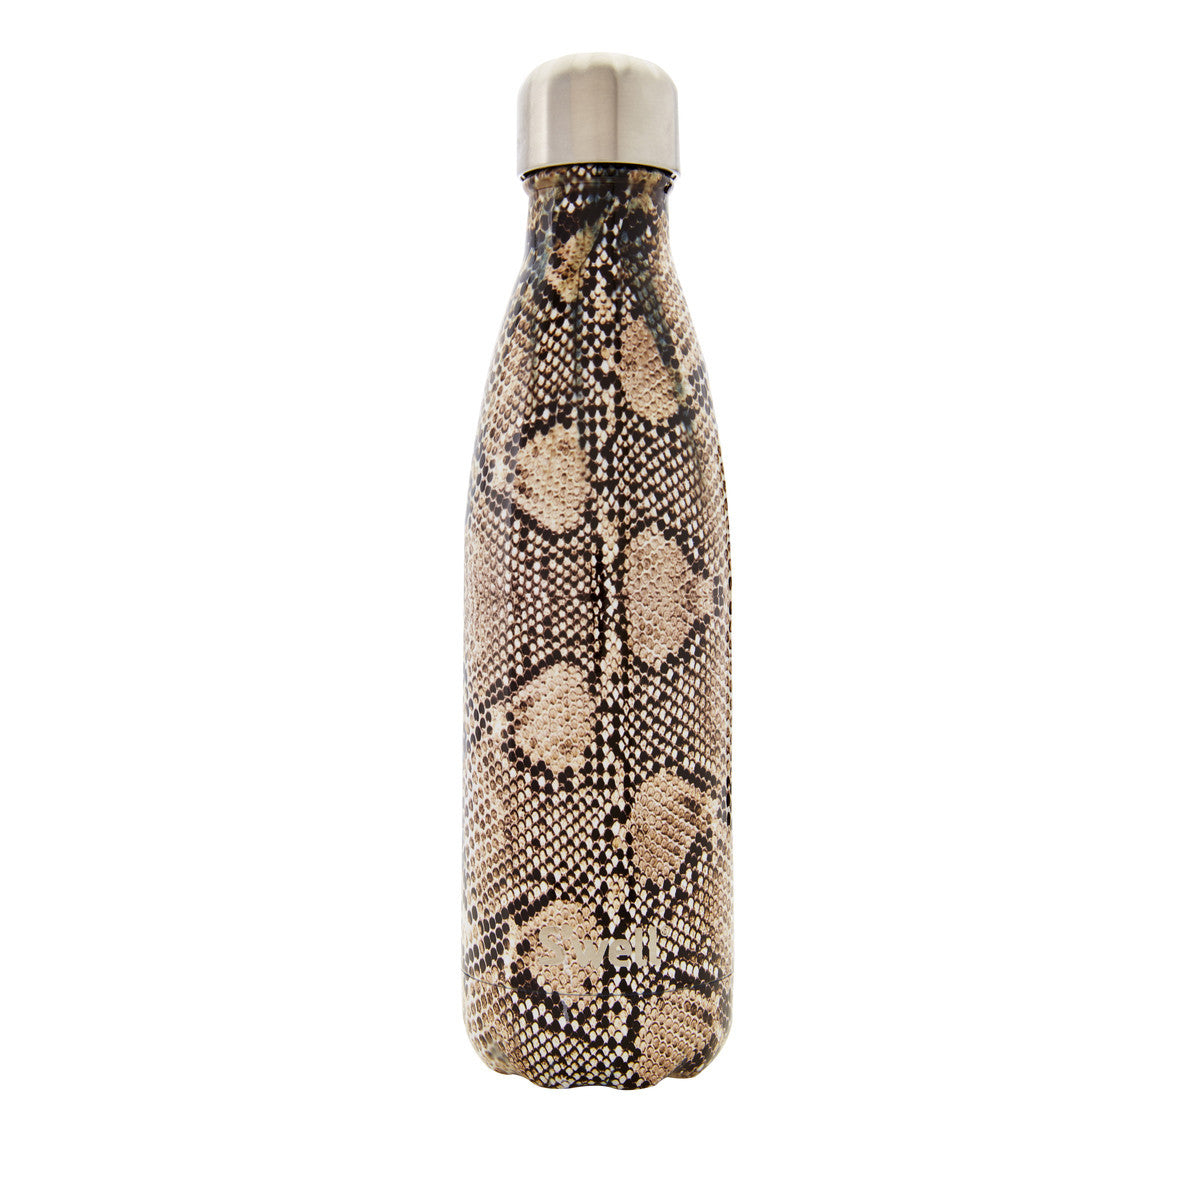 S'well Drink Bottle Sand Python, 500ml